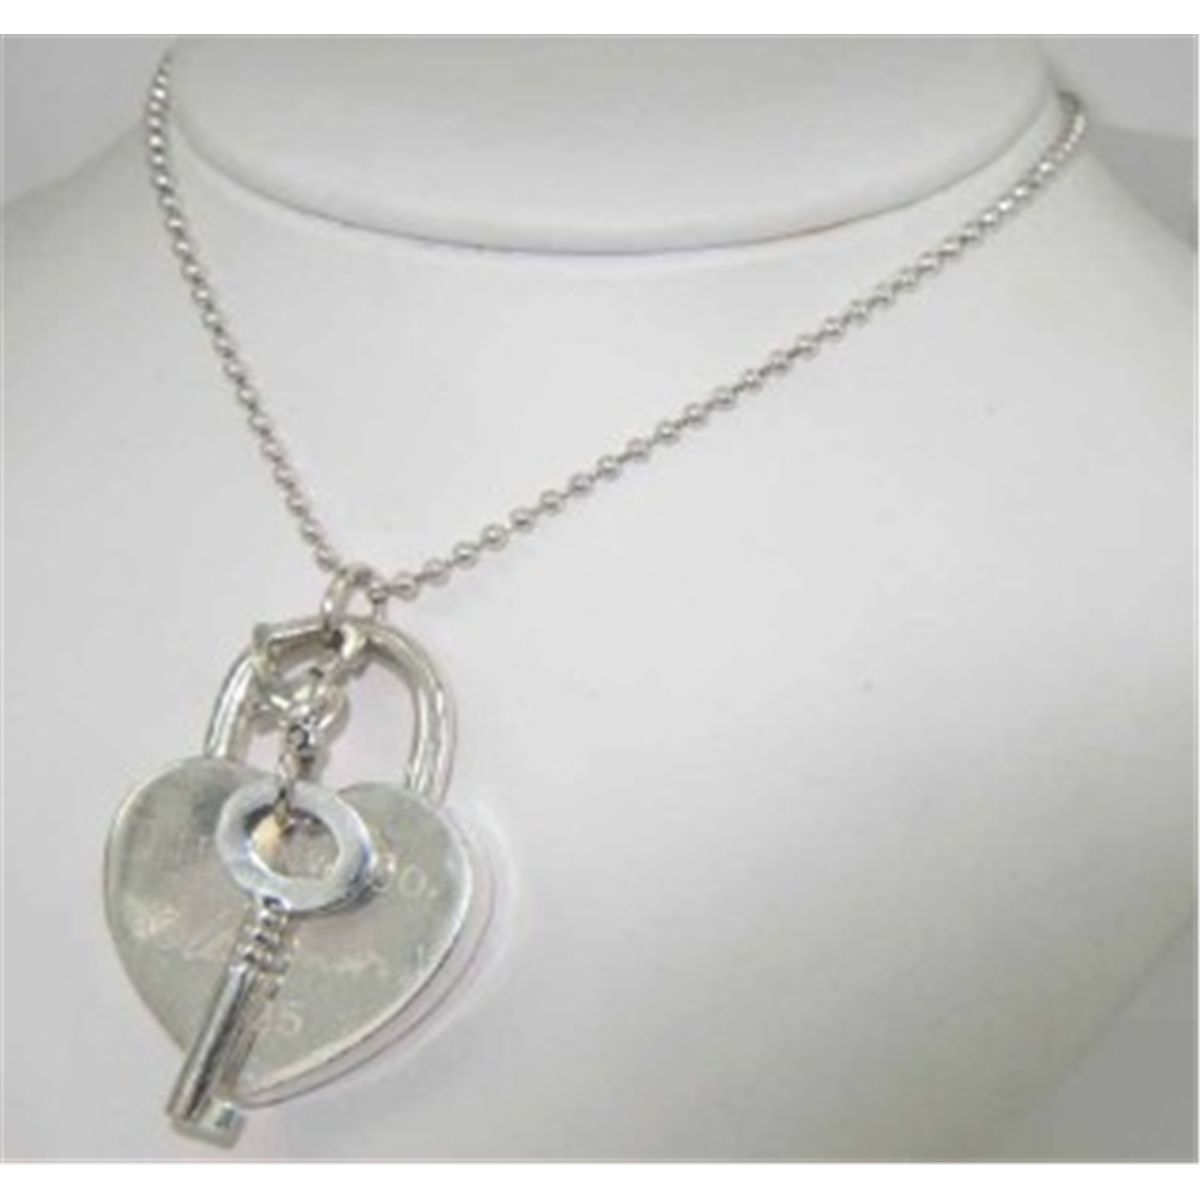 Tiffany co silver heart lock key pendant necklace aloadofball Image collections